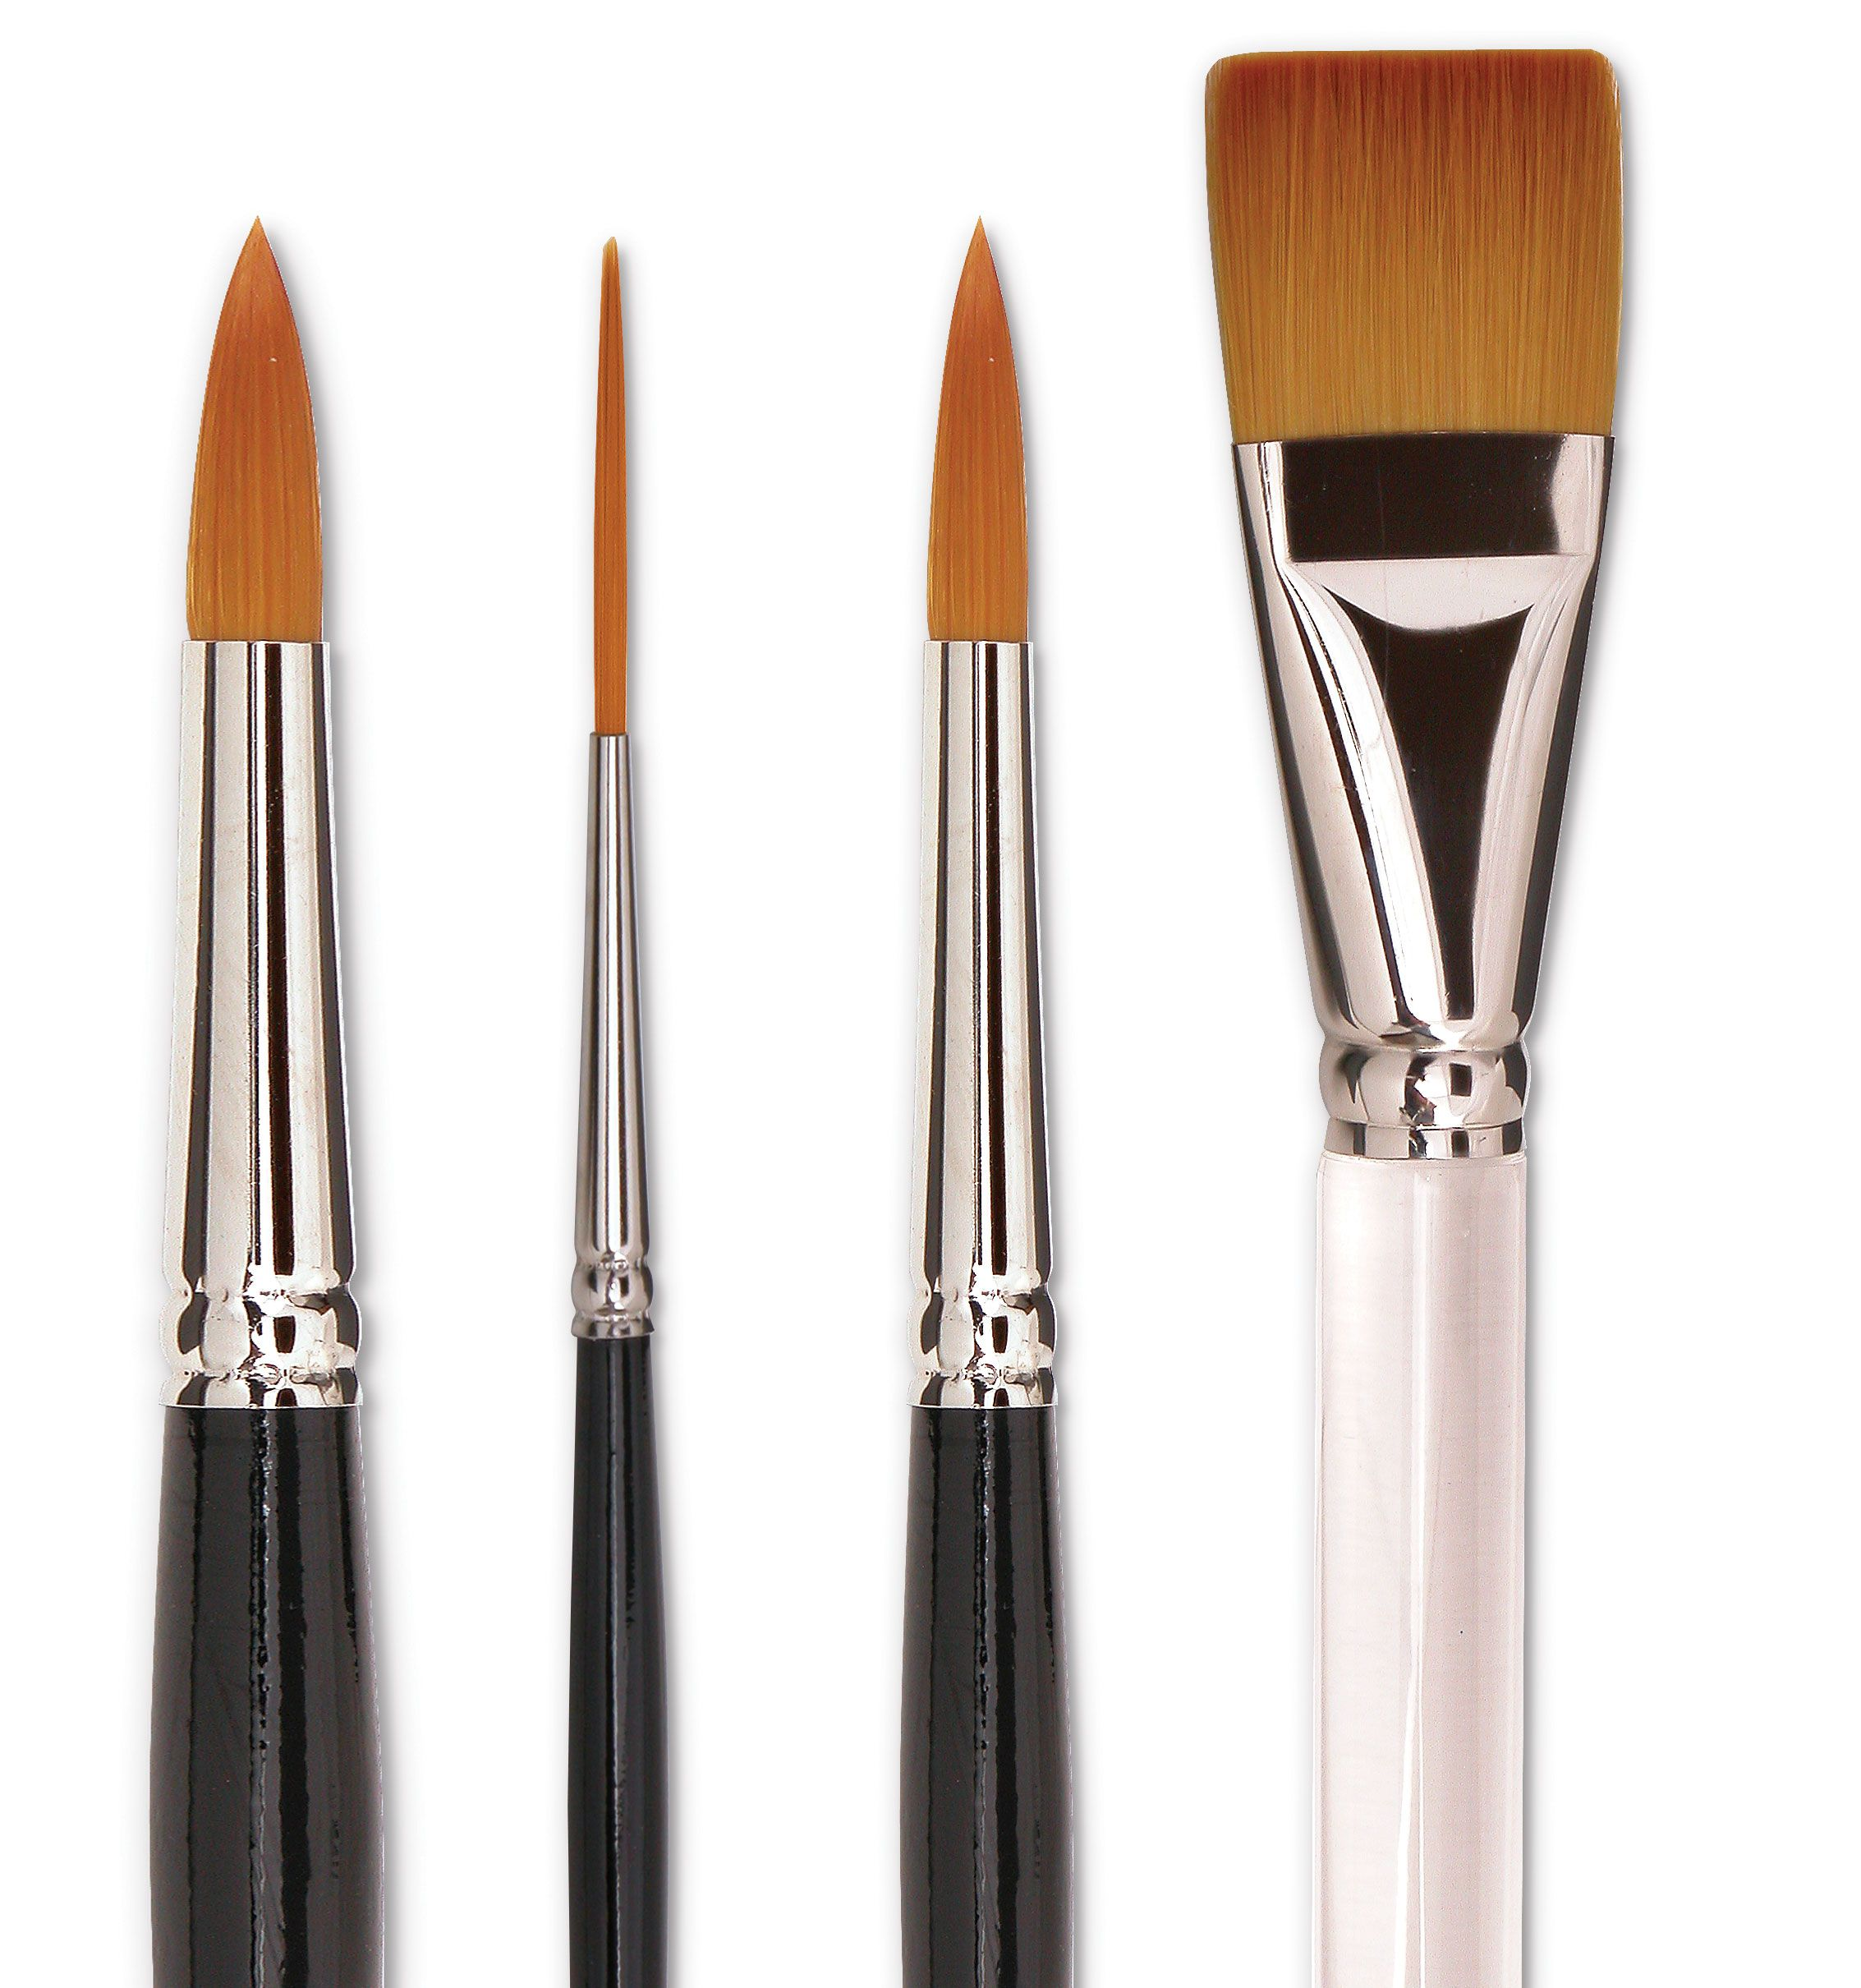 With these brushes though, the brush holds its shape, and